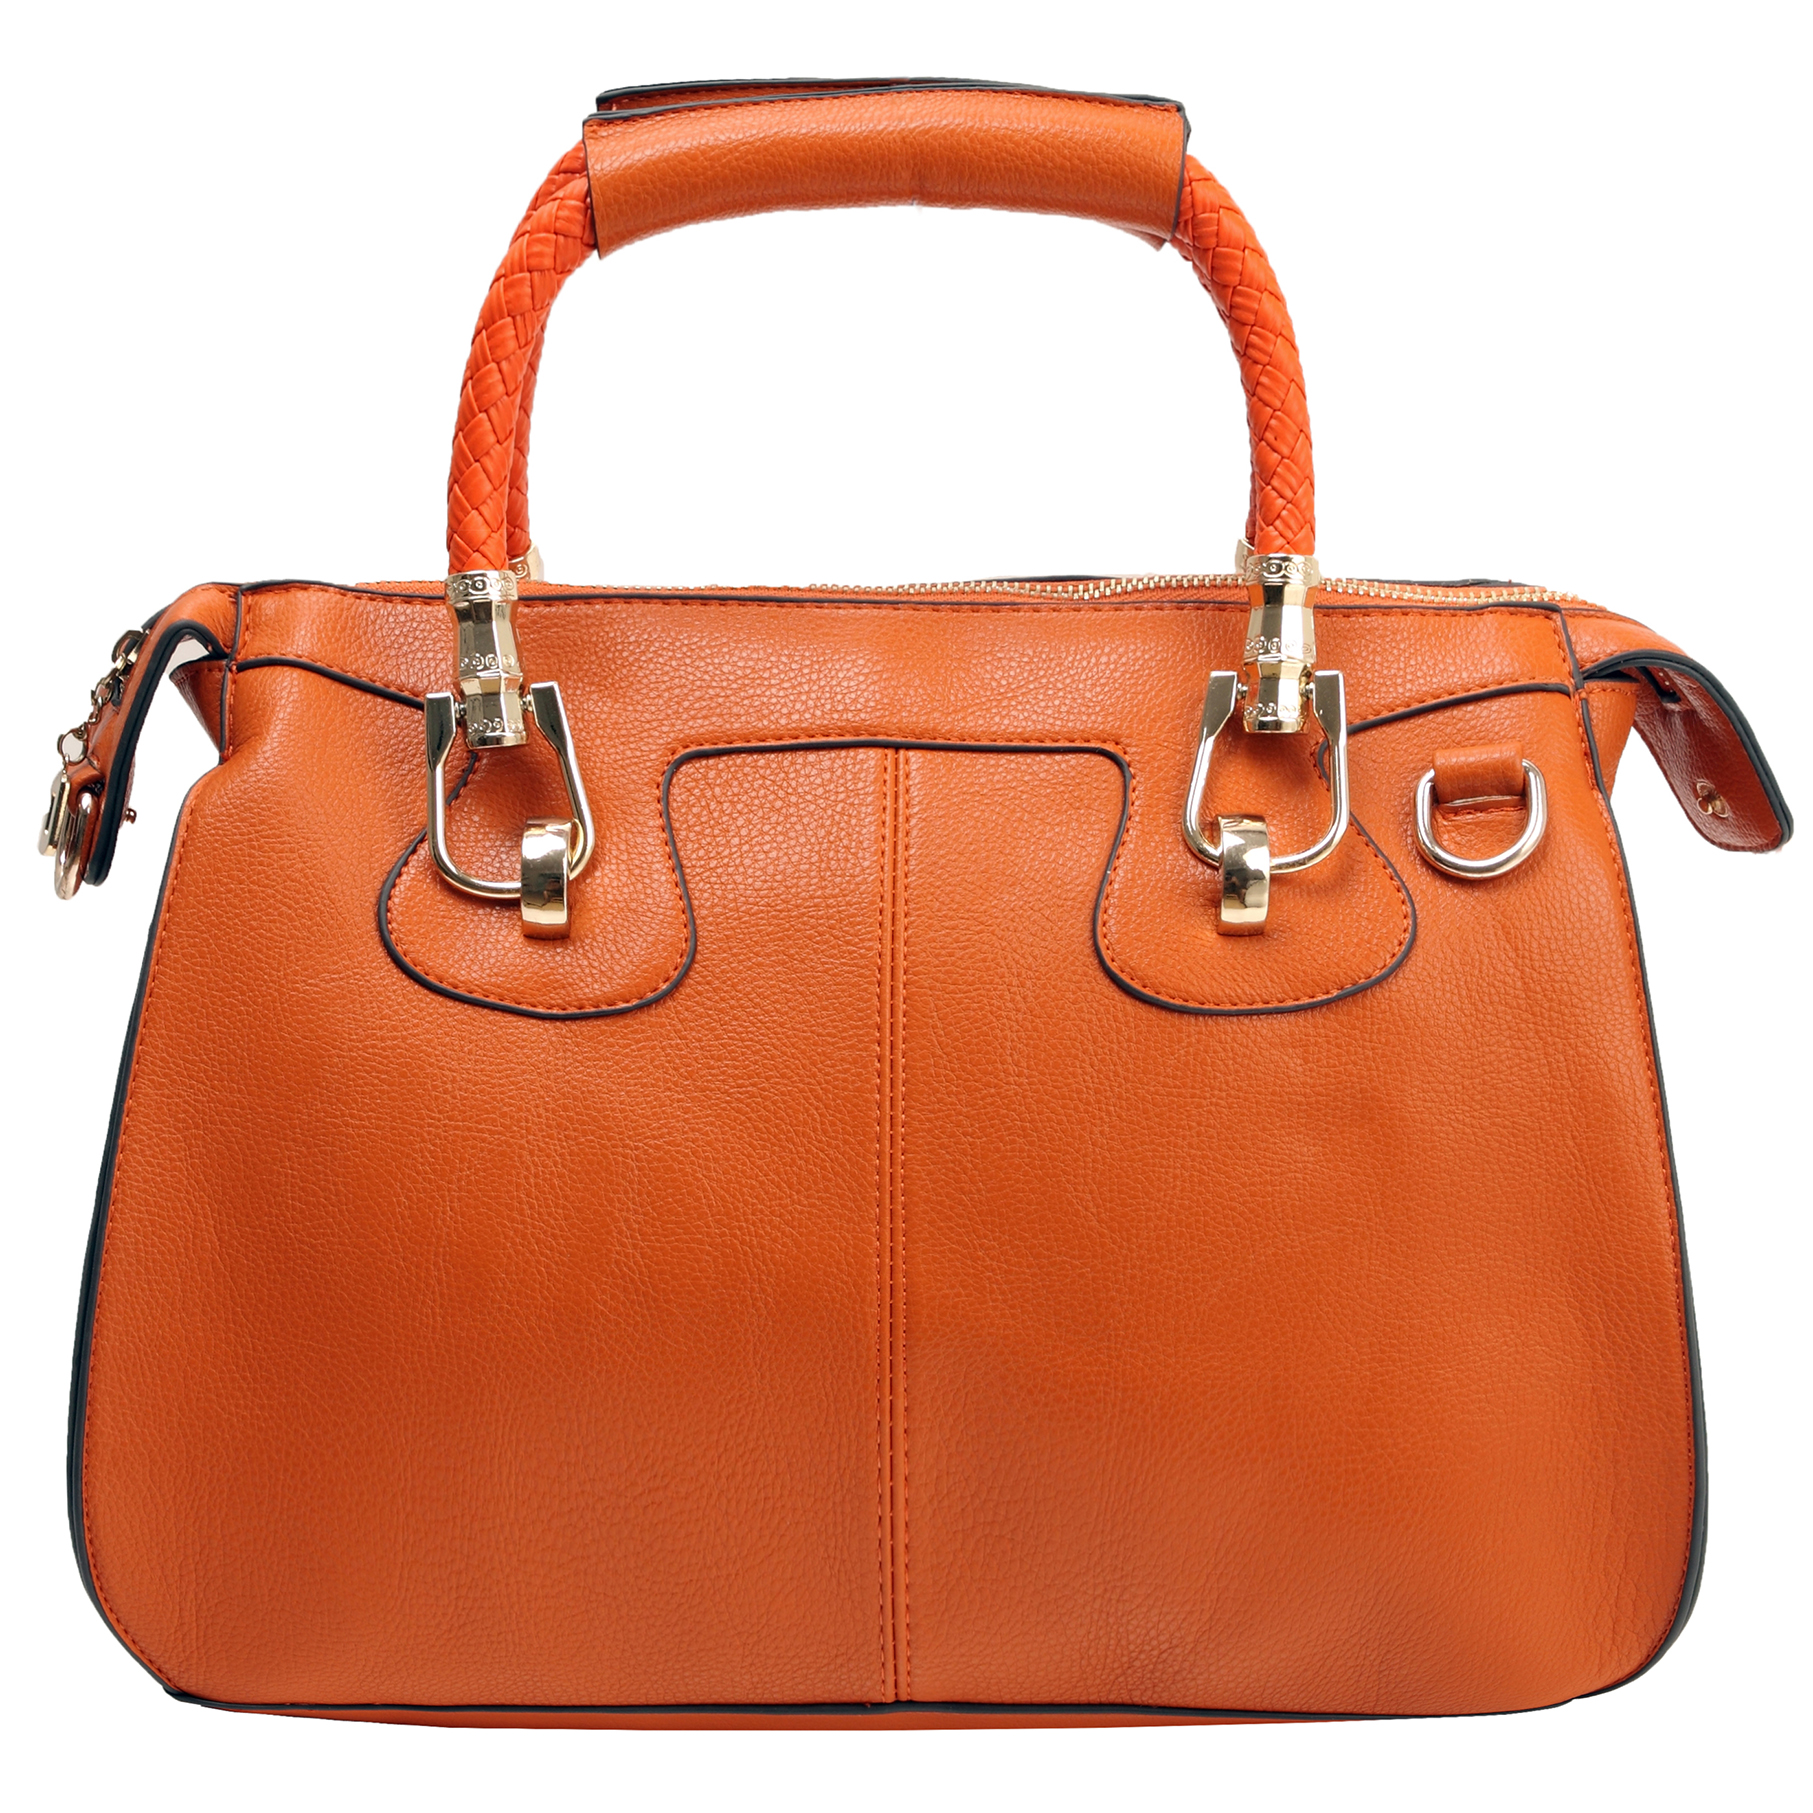 MARISSA Orange Doctor Style Handbag Front